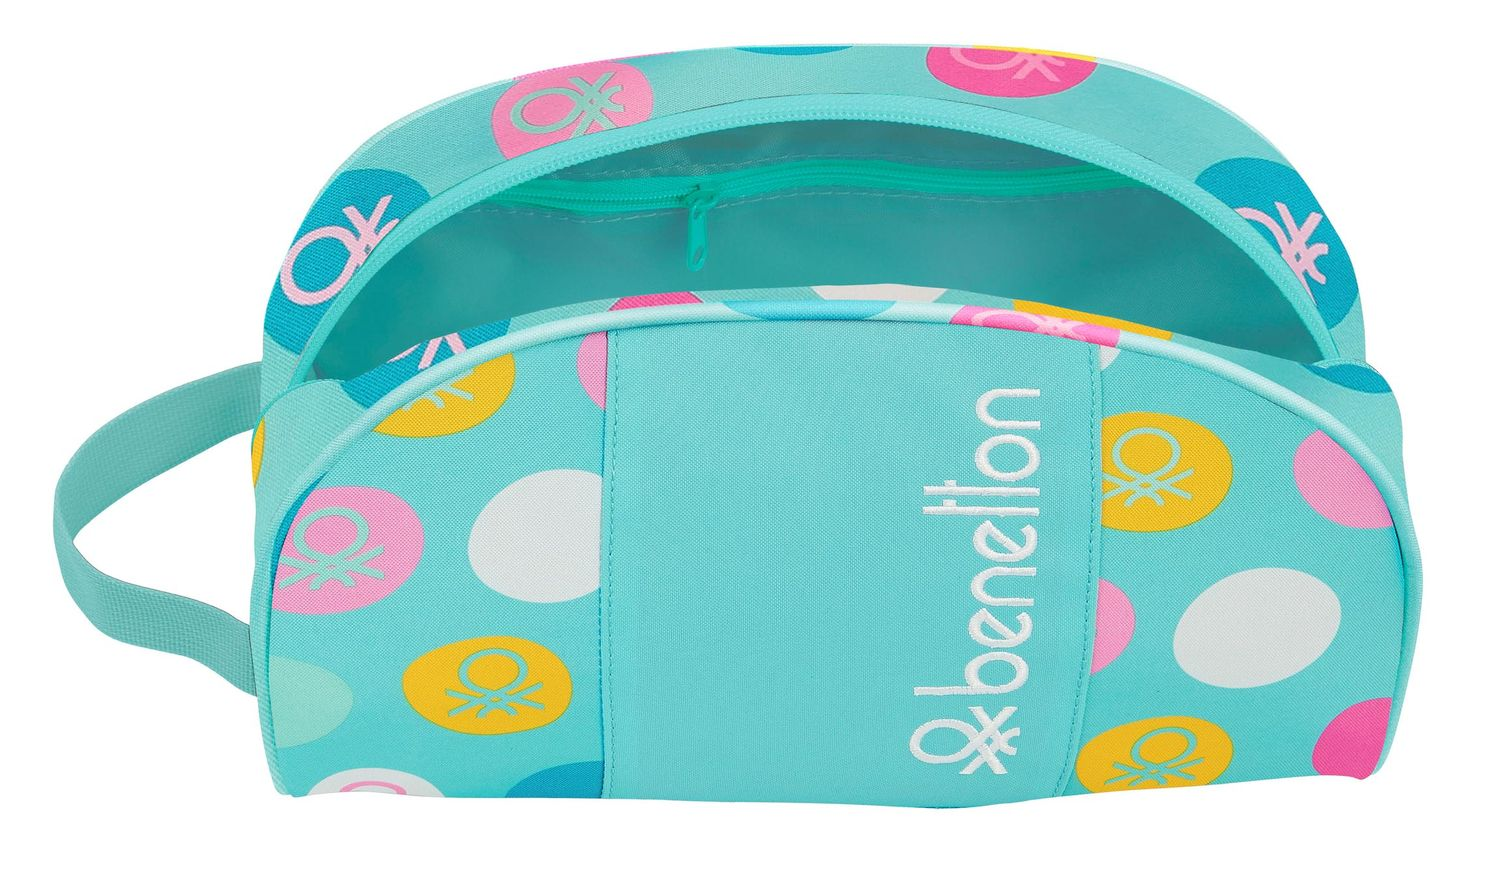 BENETTON Turquoise POLKA DOTS Toiletry Bag Beauty Case – image 2